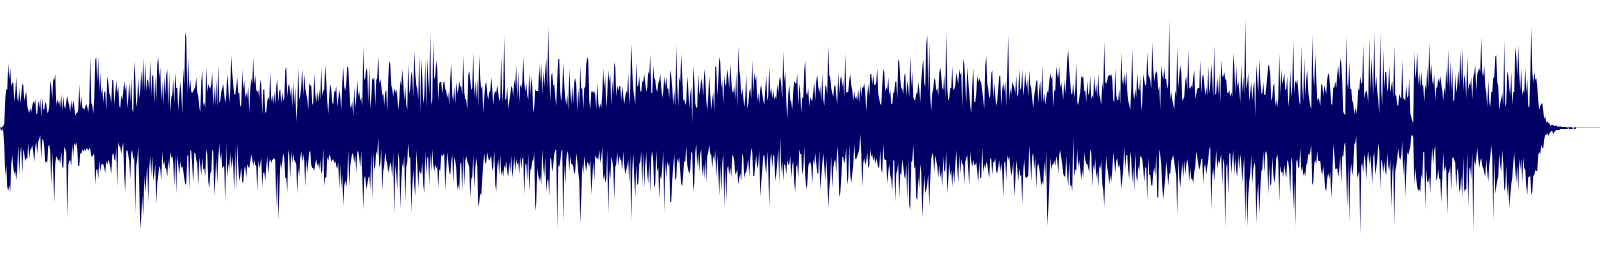 waveform of track #128706